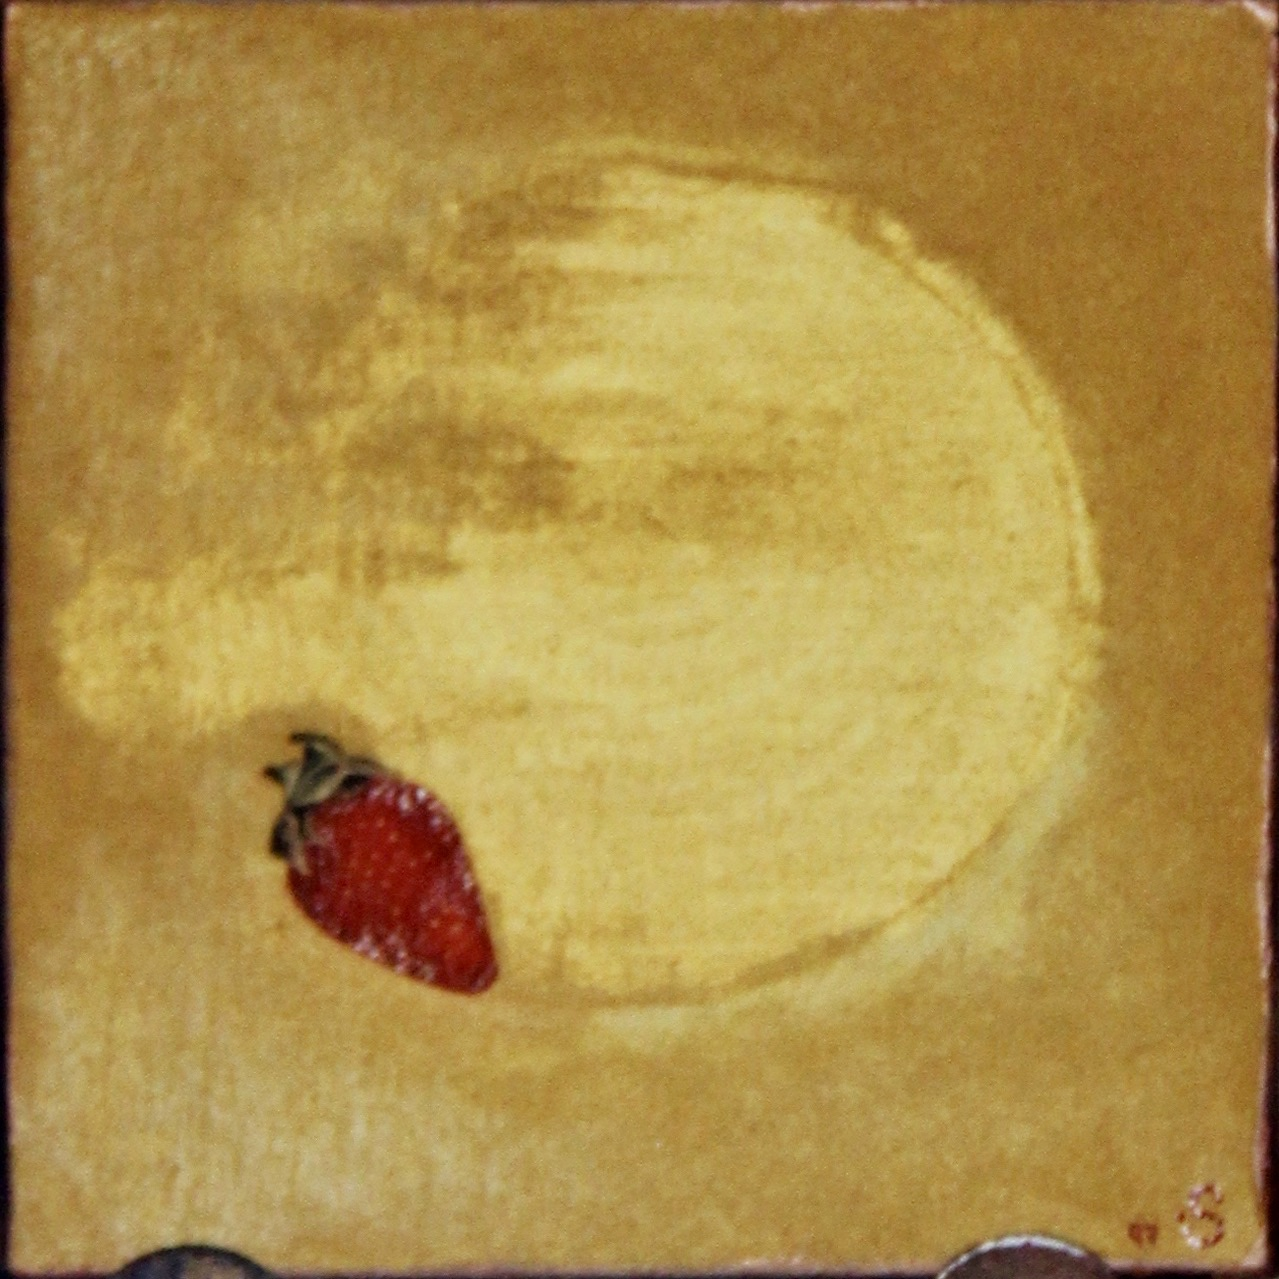 Fresa -  1997 oil on canvas. 30cm x 30cm (sold)